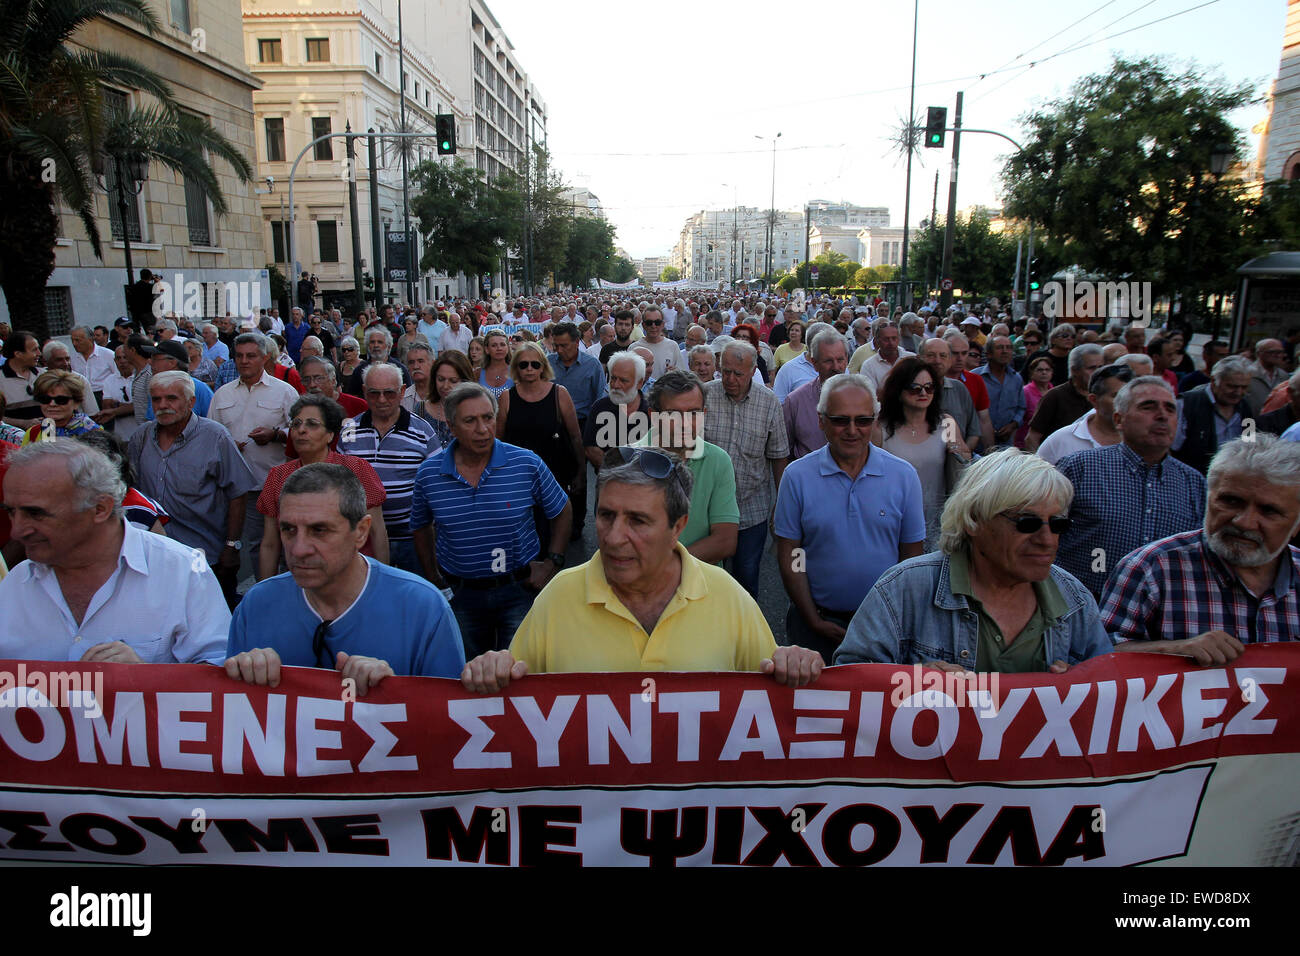 Athens, Greece. 23rd June, 2015. People protest in central Athens against the plans submitted by Greek government - Stock Image